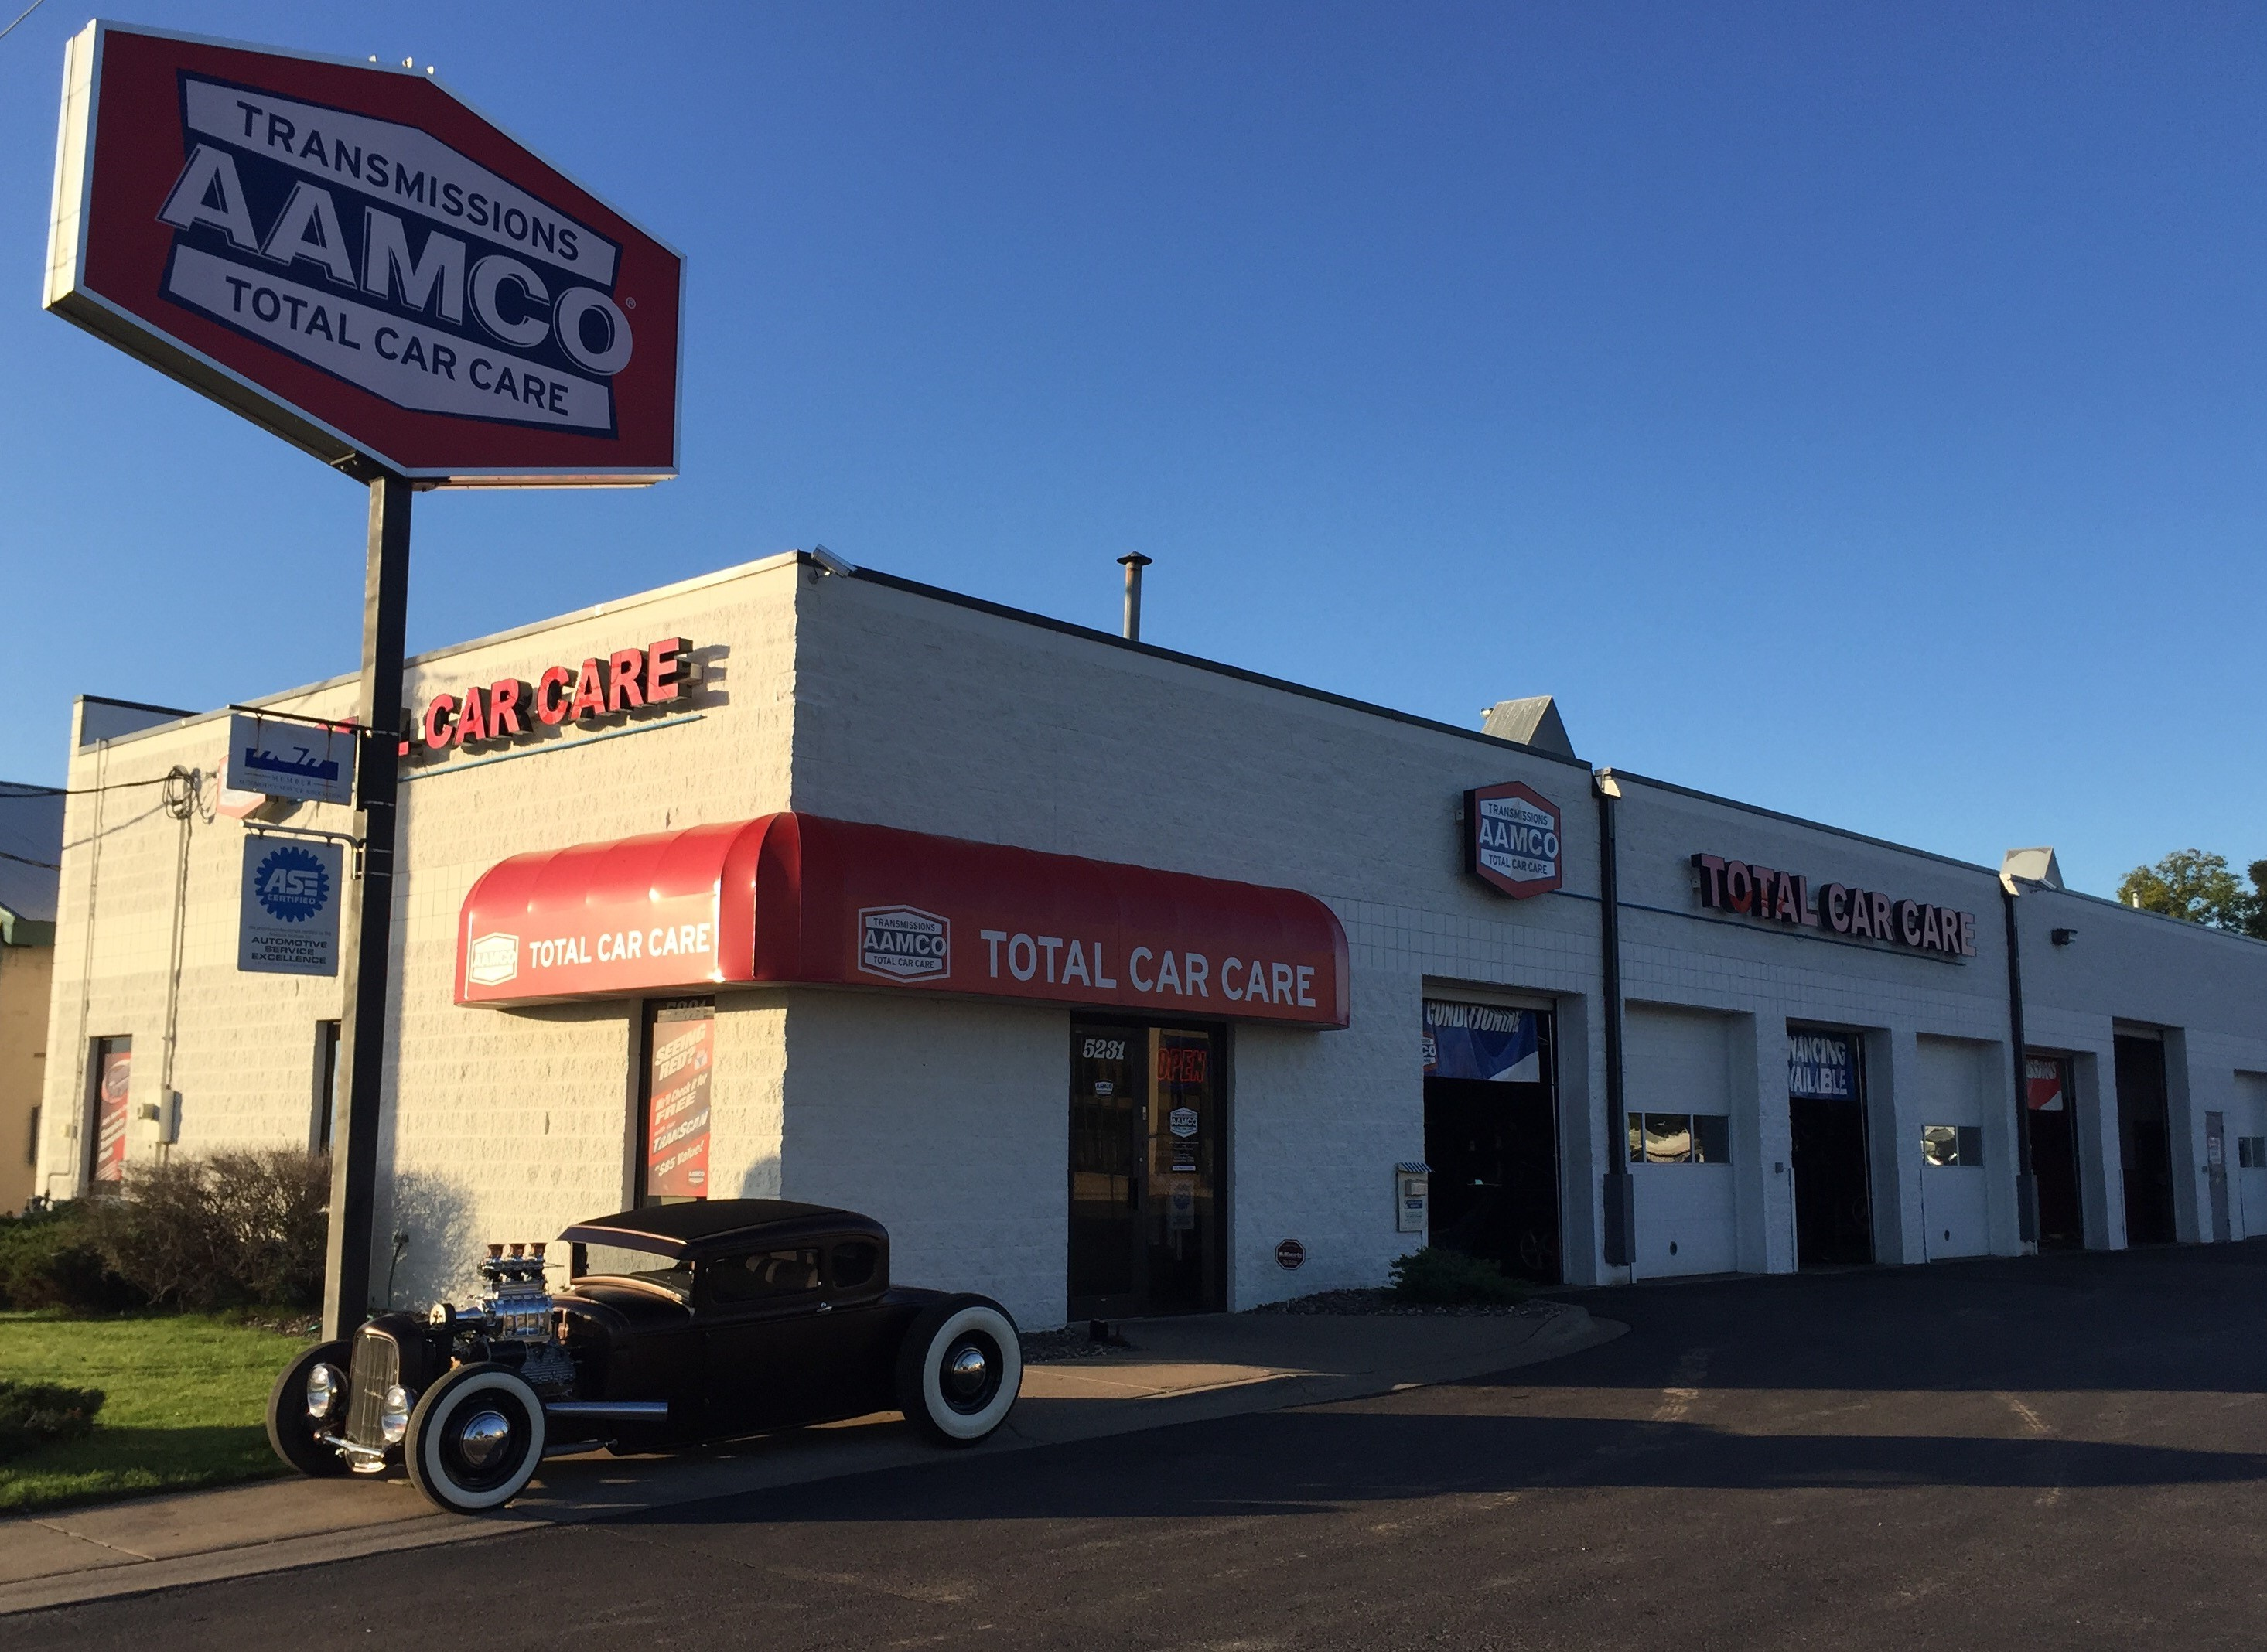 image of AAMCO Minneapolis, MN transmission and auto repair shop.